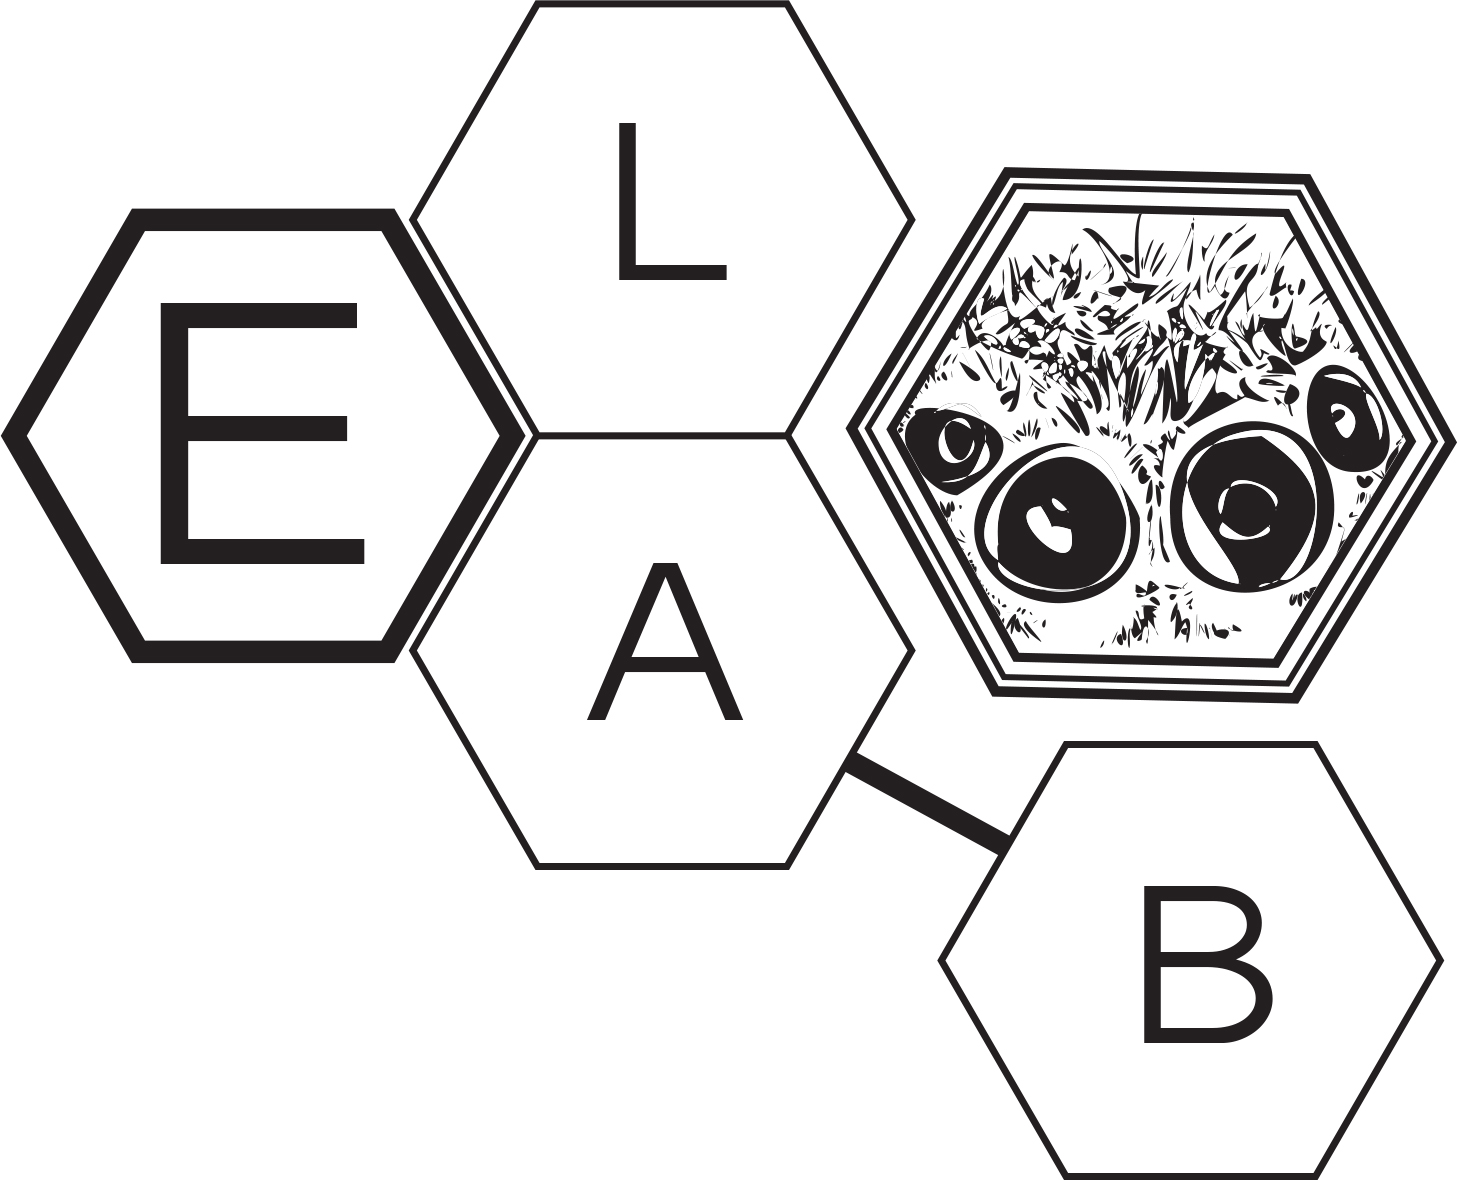 Beaker Clipart Black And White as well Science in addition  as well Beakers further Coloring Page Headache I12167. on laboratory beaker